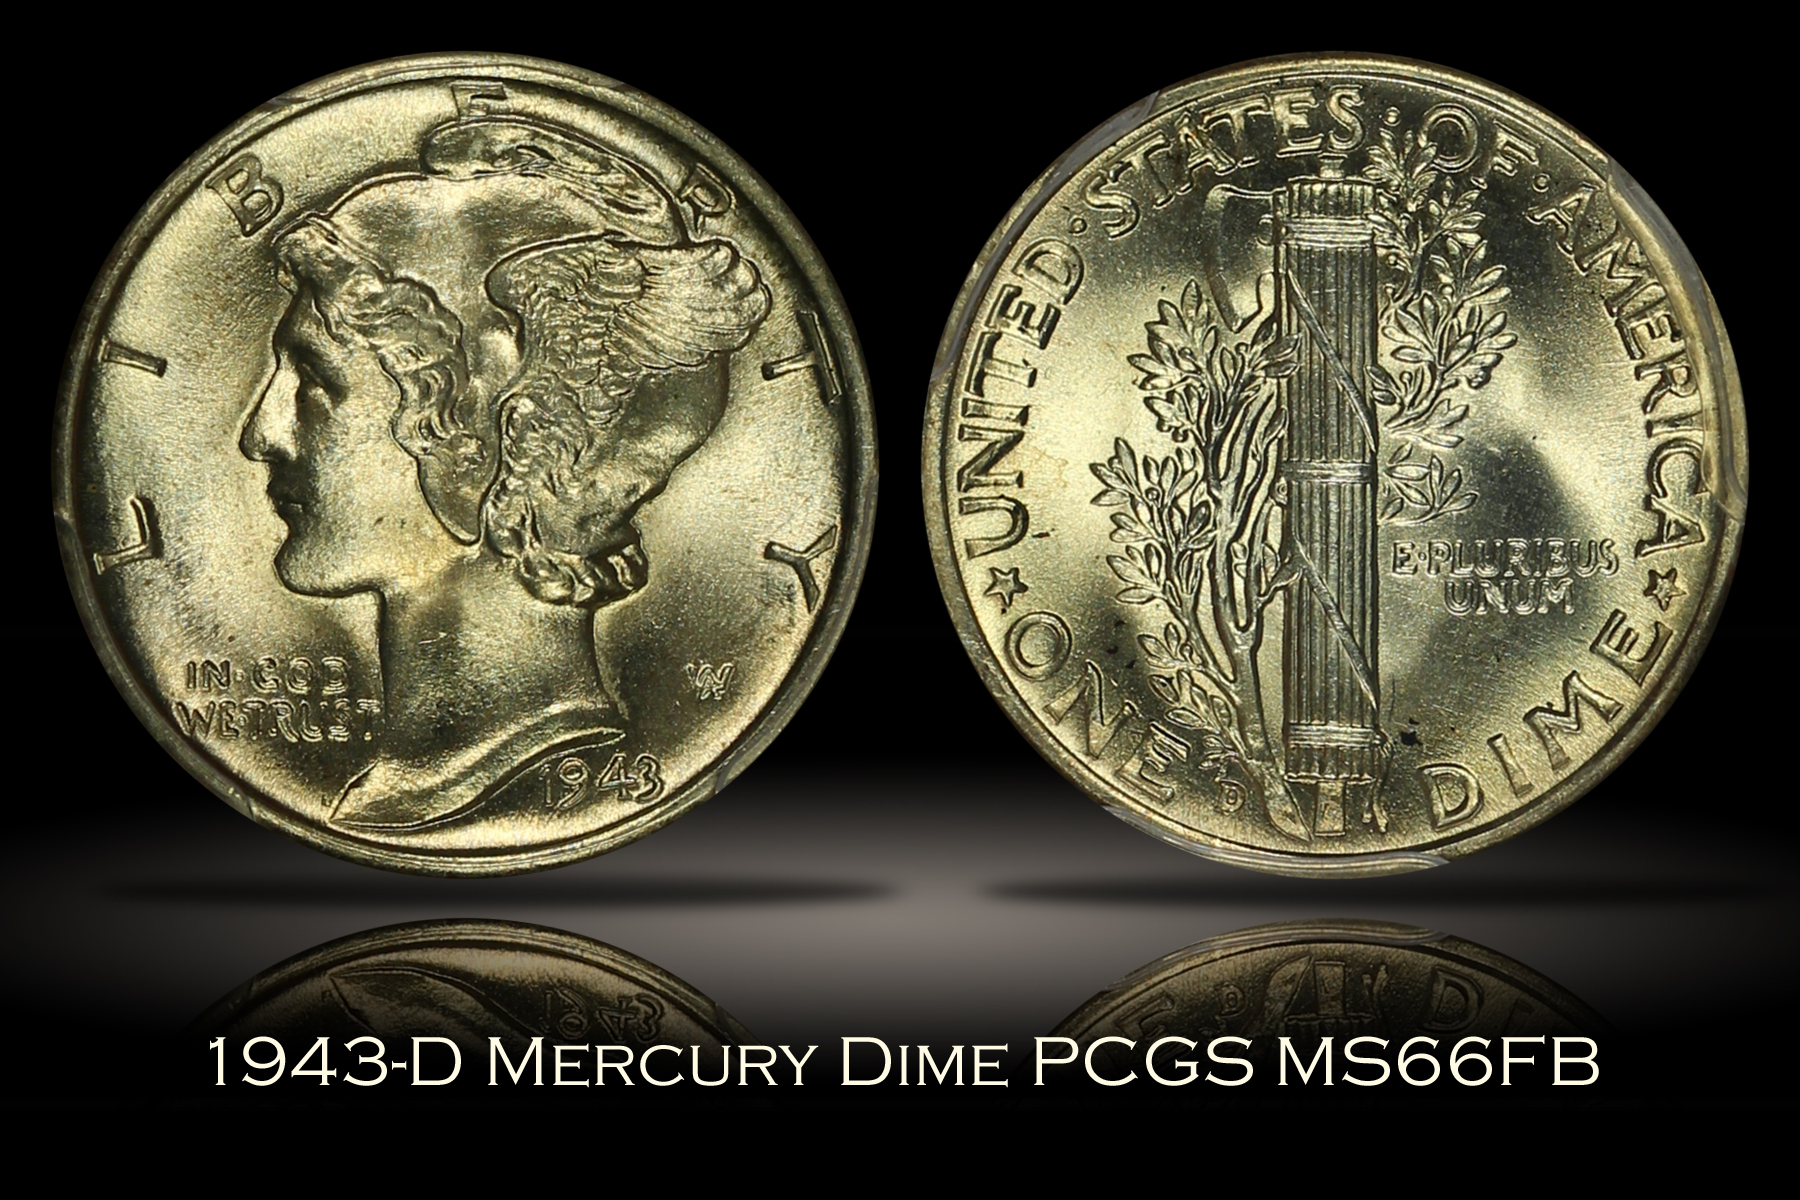 1943-D Mercury Dime PCGS MS66FB